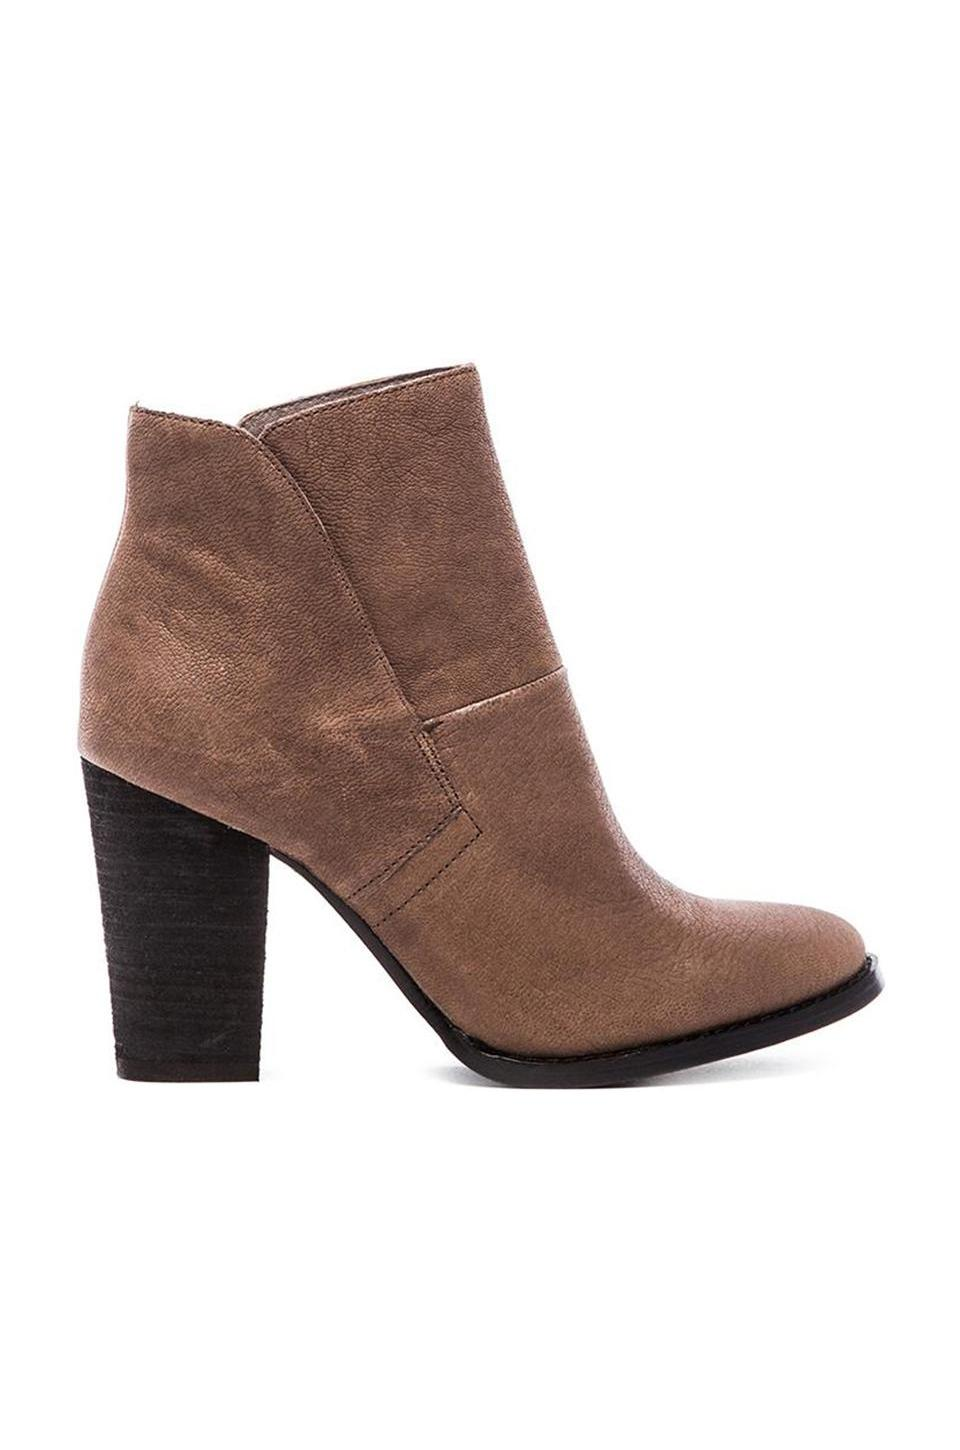 Vince Camuto Ristin Bootie in Smoke Taupe